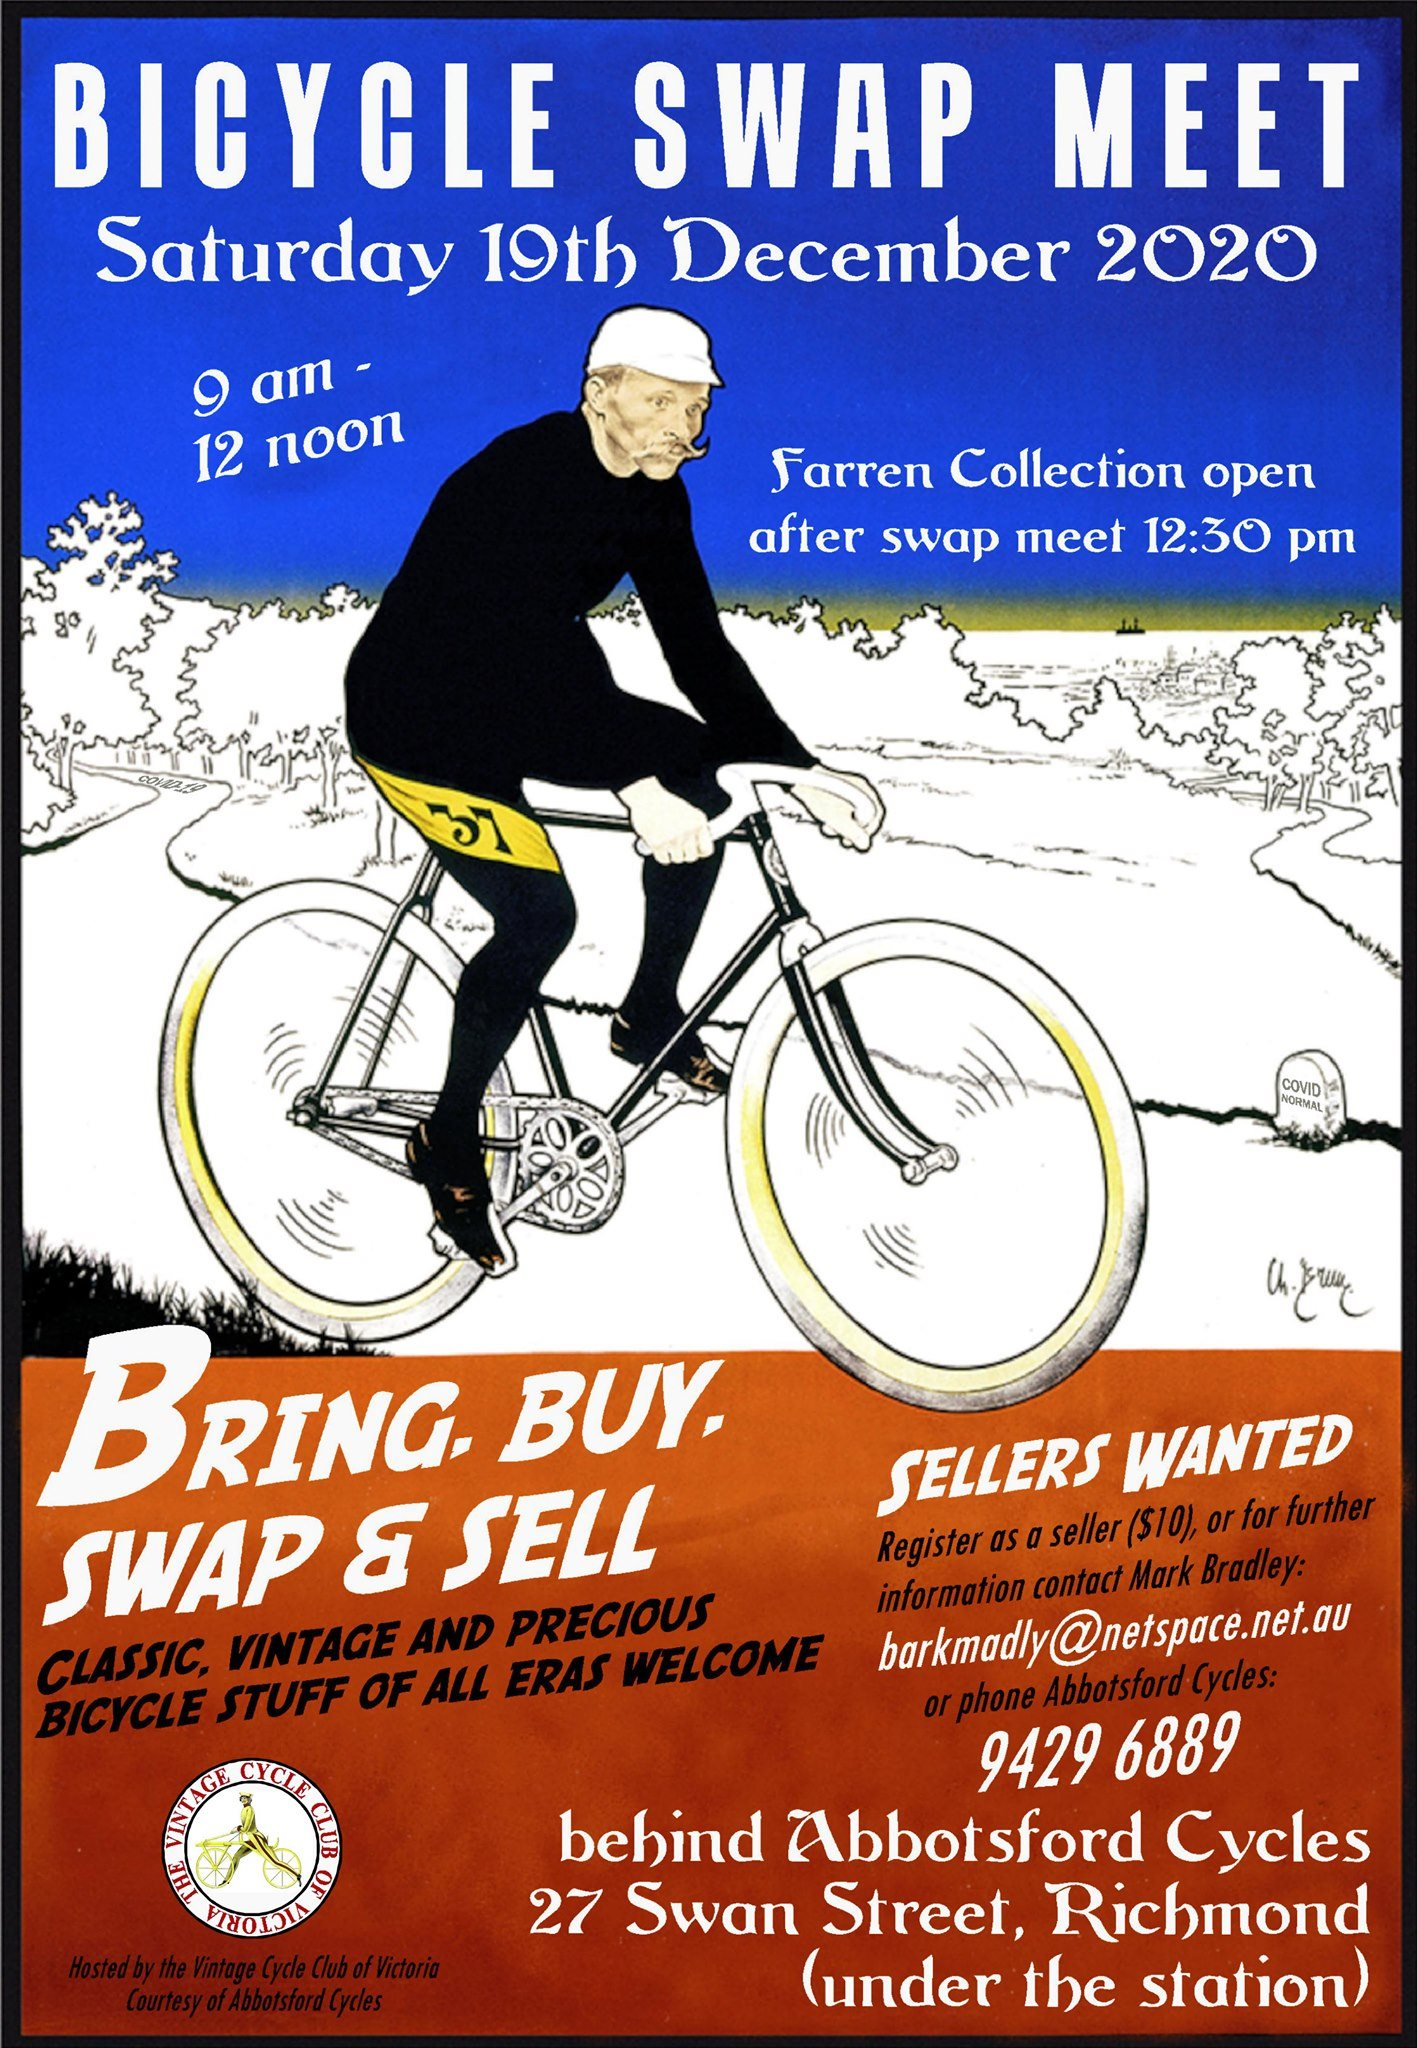 Poster for bicycle swap meet event (details repeated below)